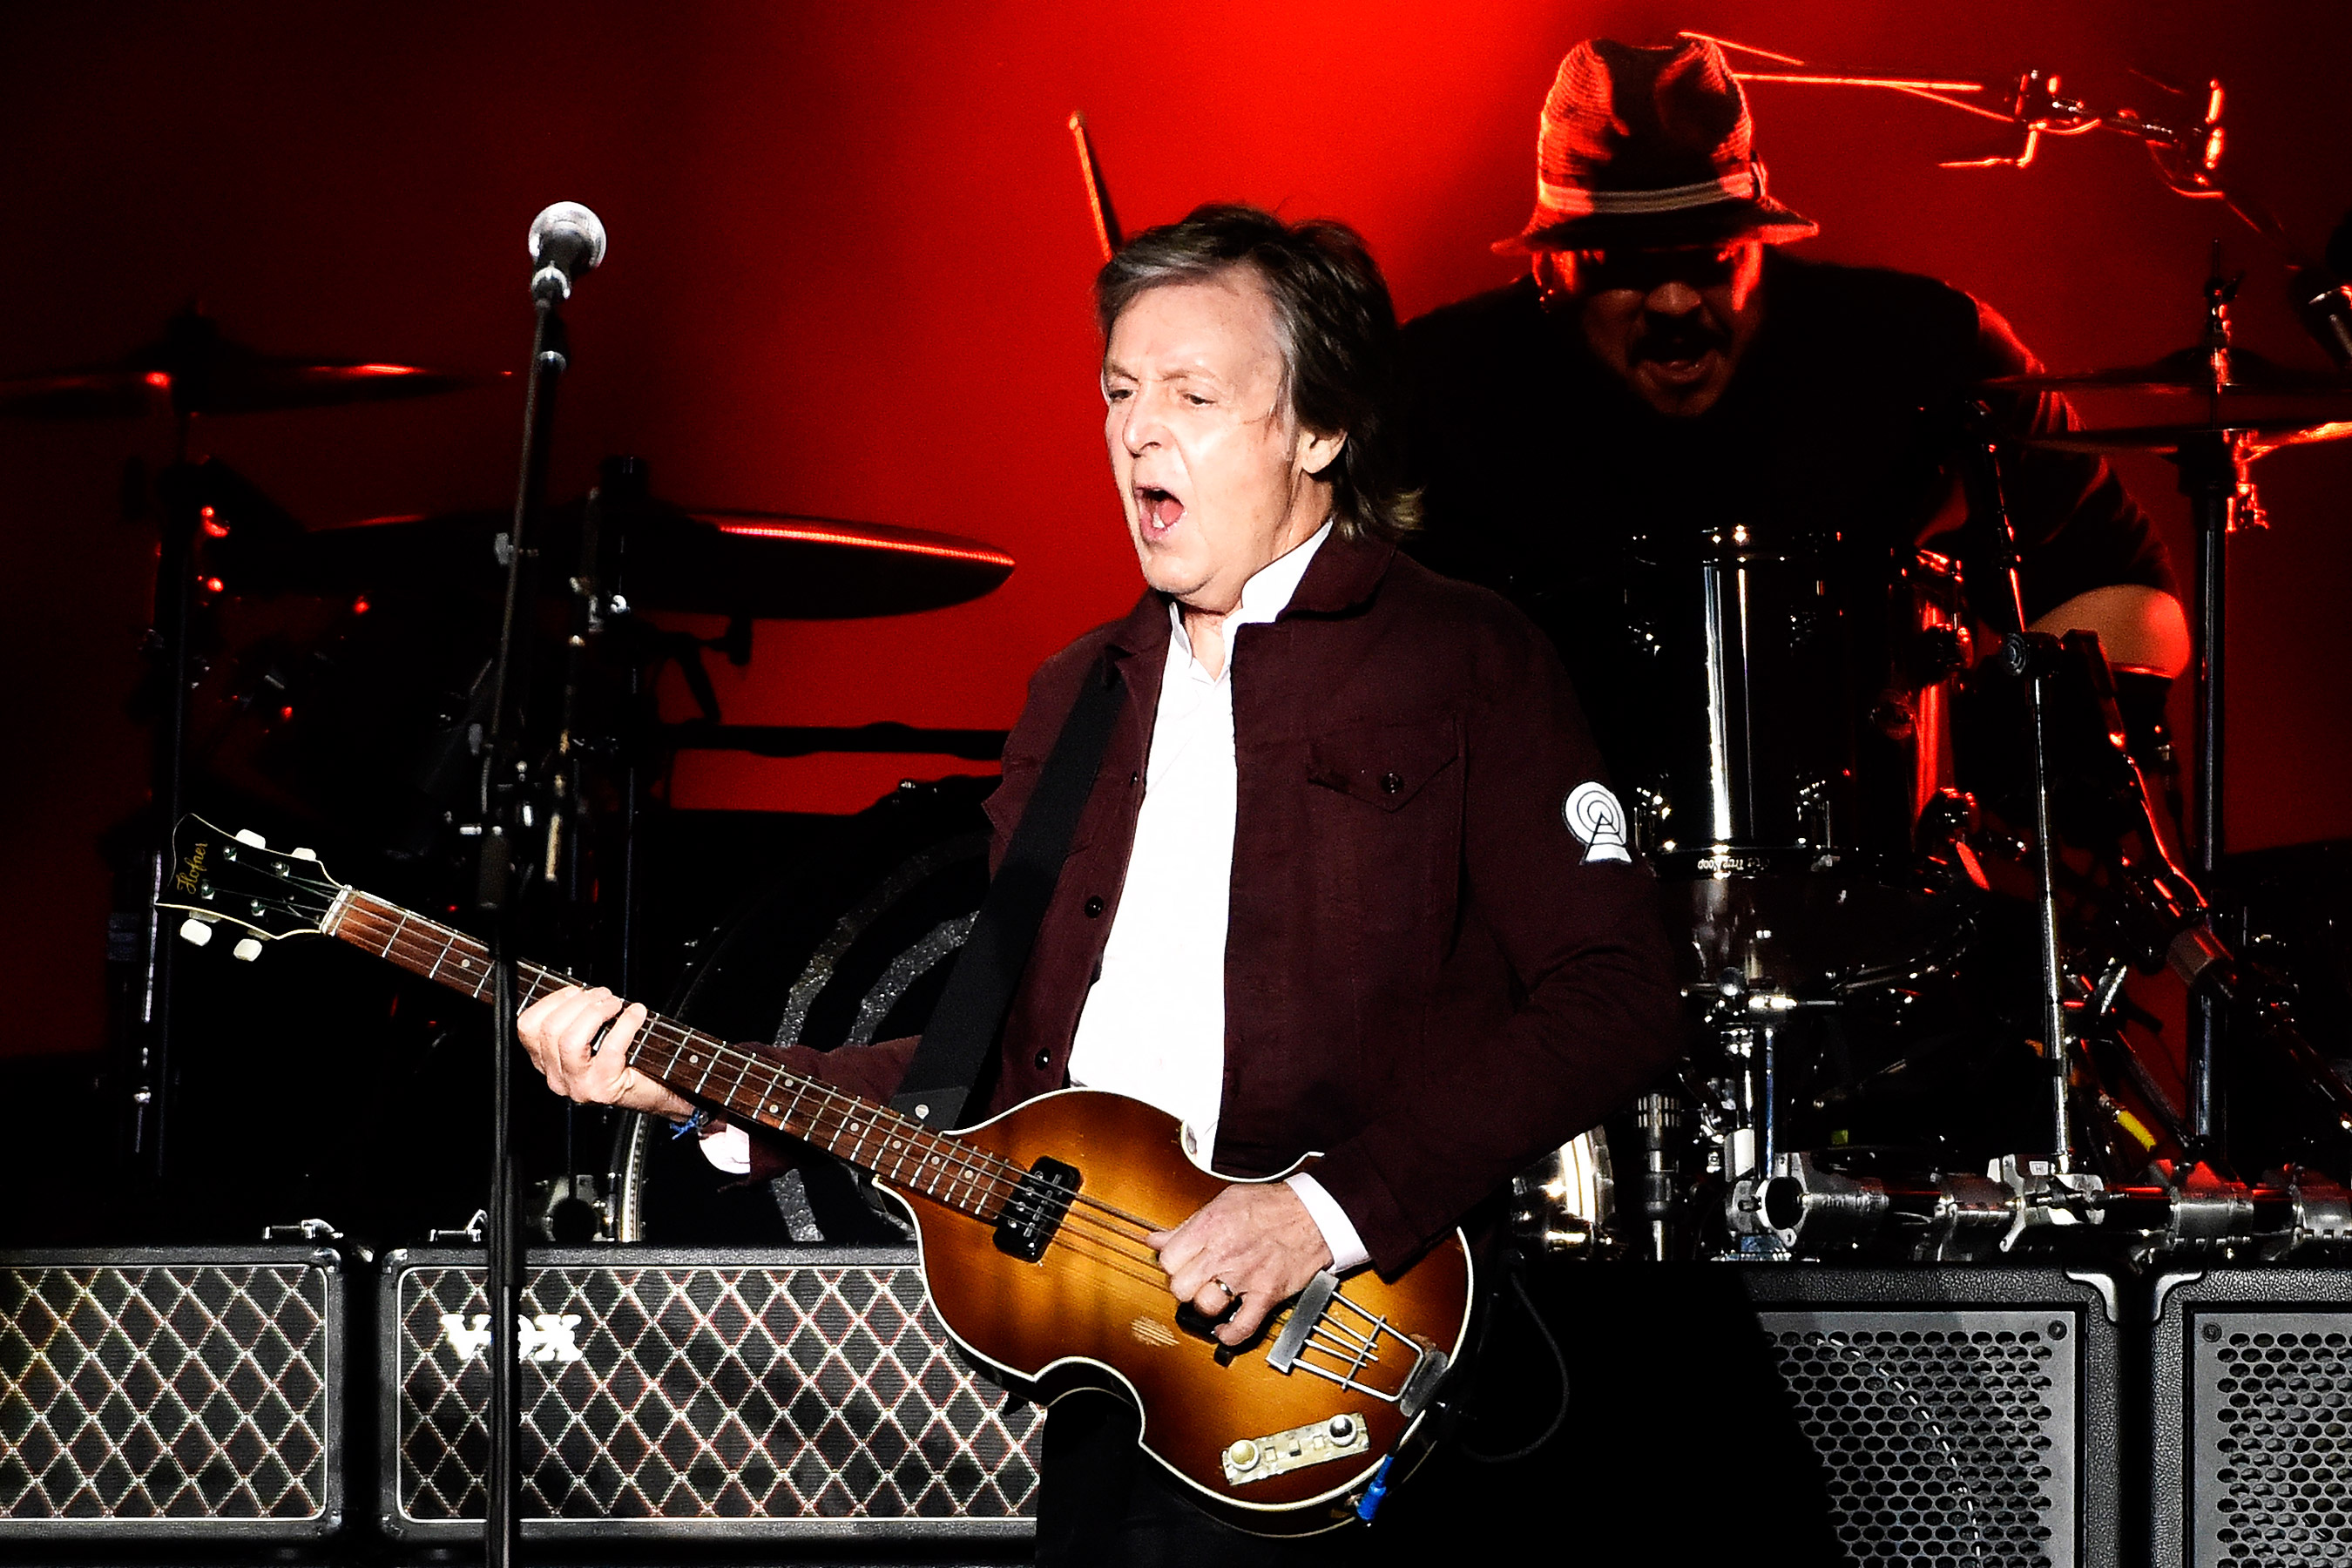 Paul McCartney at Austin City Limits: Certainly a Thrill